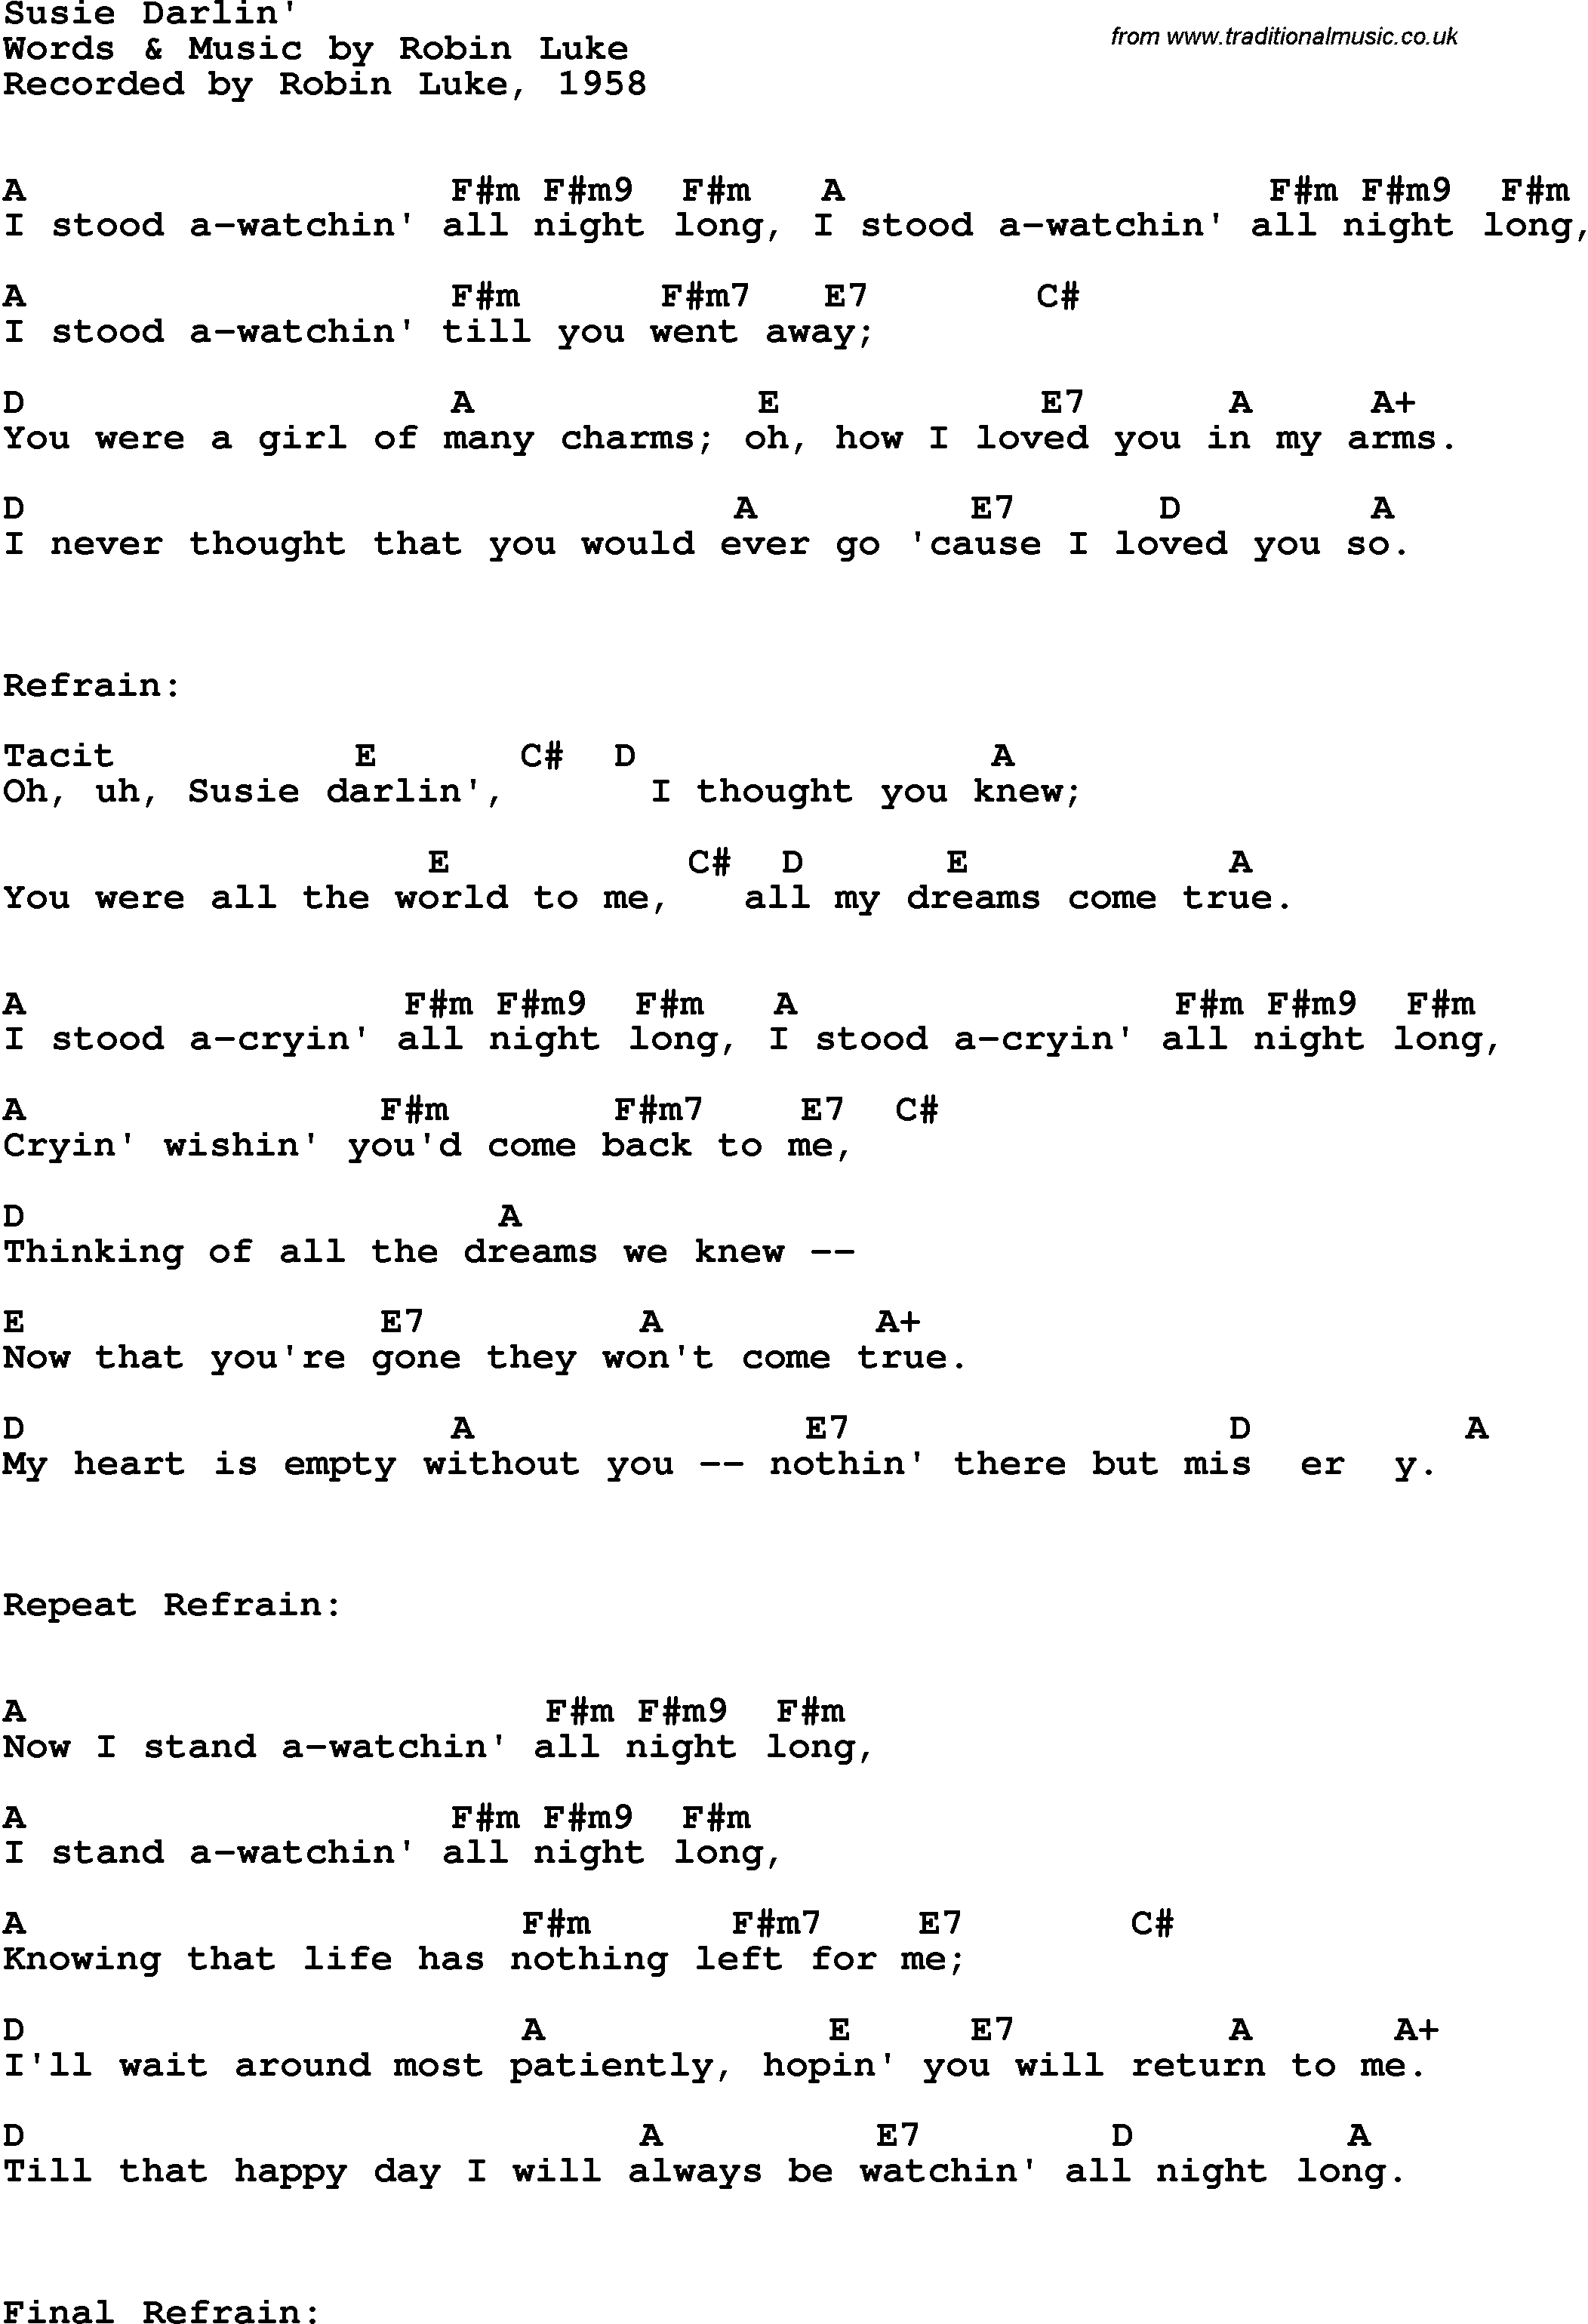 Song lyrics with guitar chords for susie darlin robin luke 1958 song lyrics with guitar chords for susie darlin robin luke 1958 hexwebz Images